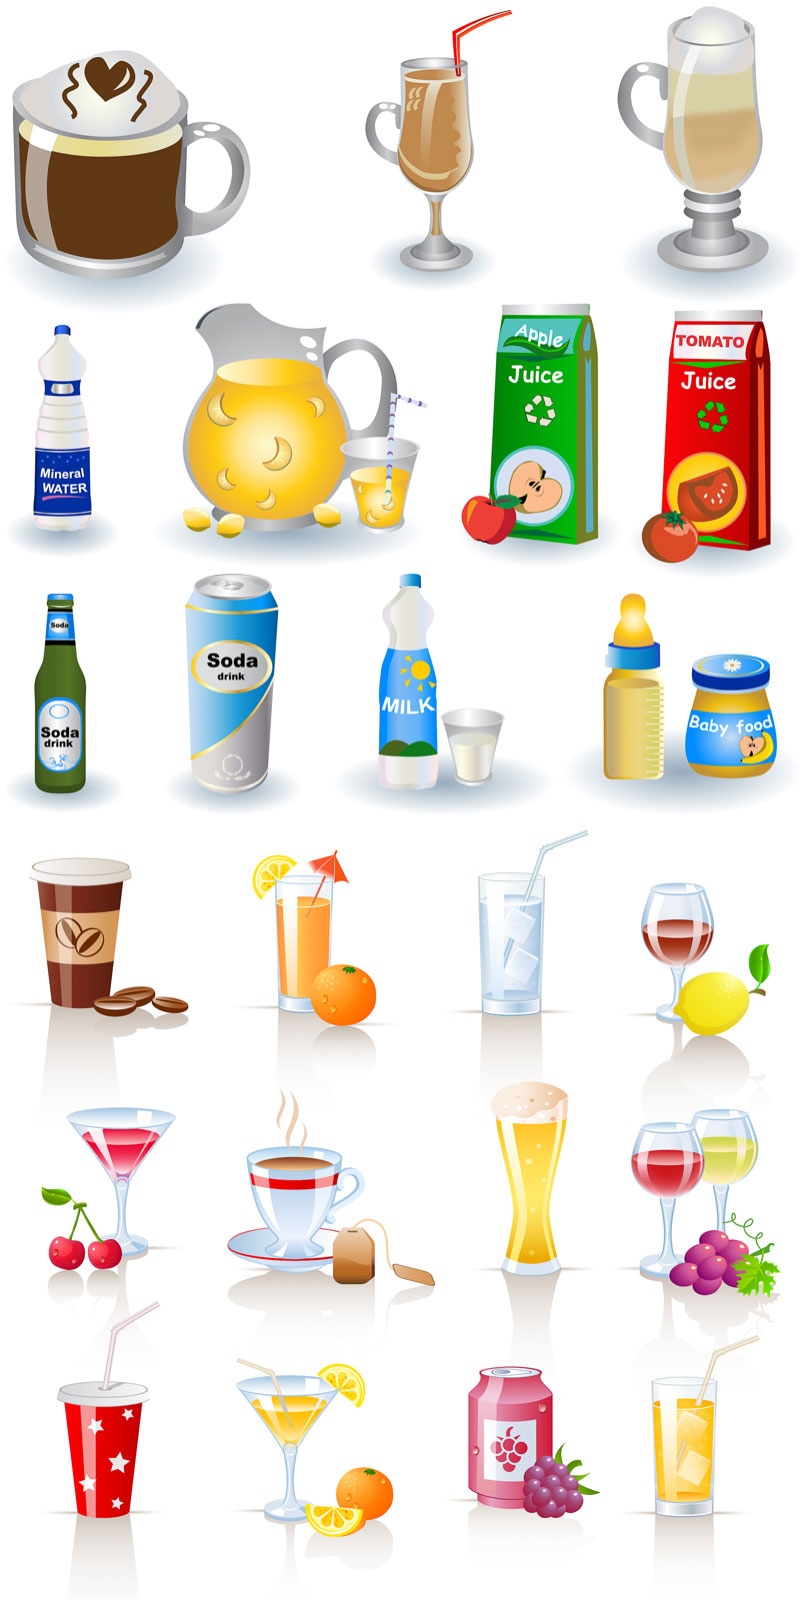 Free Drinks Cliparts, Download Free Clip Art, Free Clip Art.